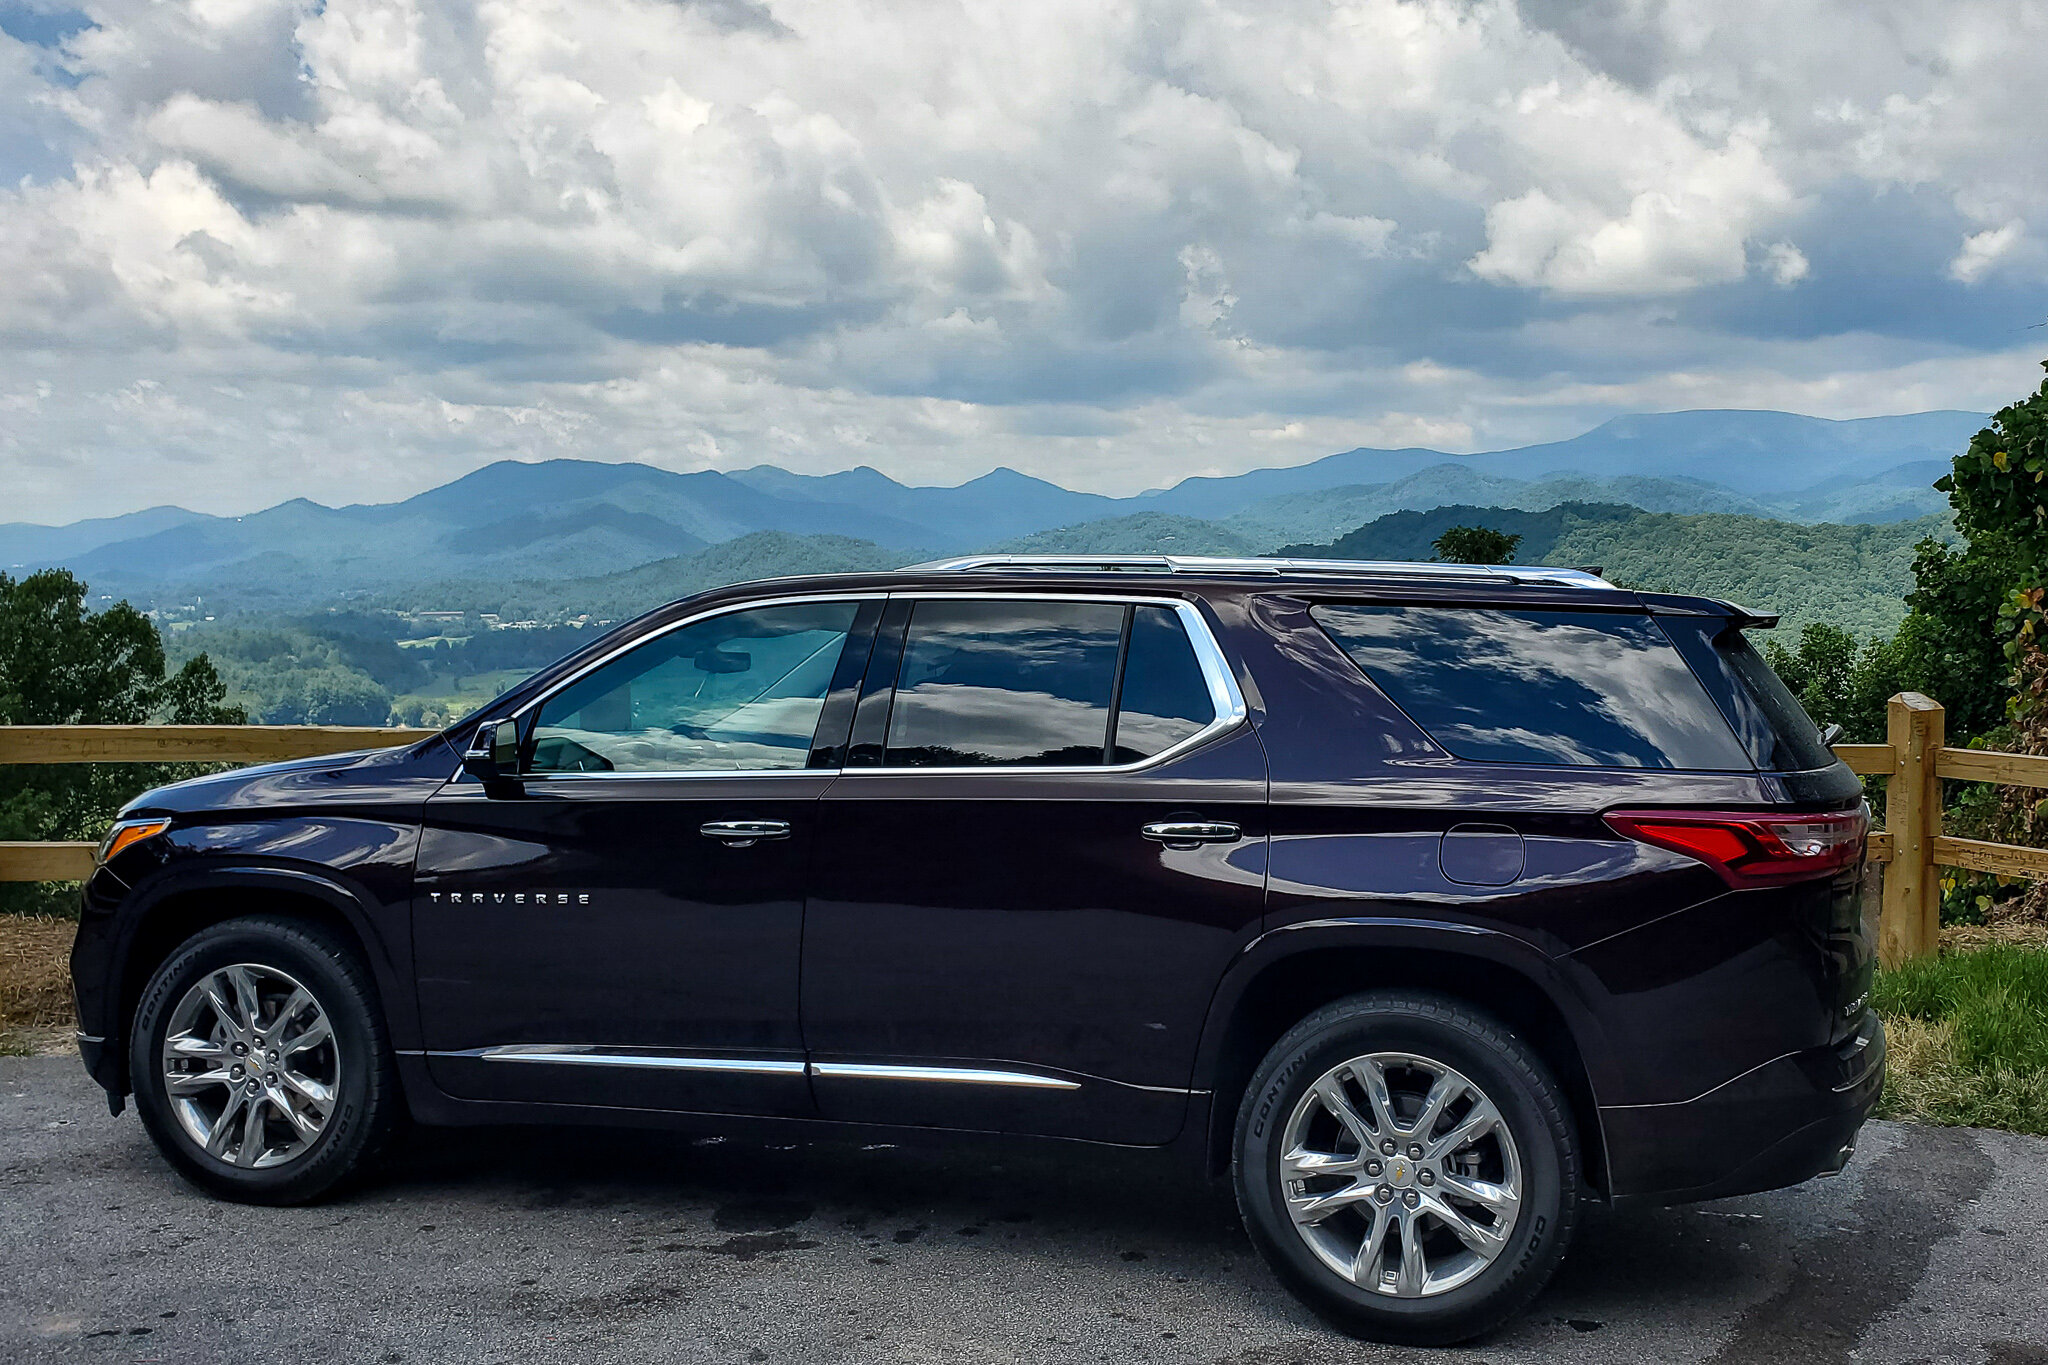 The Chevy Traverse is perfect for road trips! Pictured here in the mountains of Cashiers/Highlands, North Carolina (c) Anna Lanfreschi